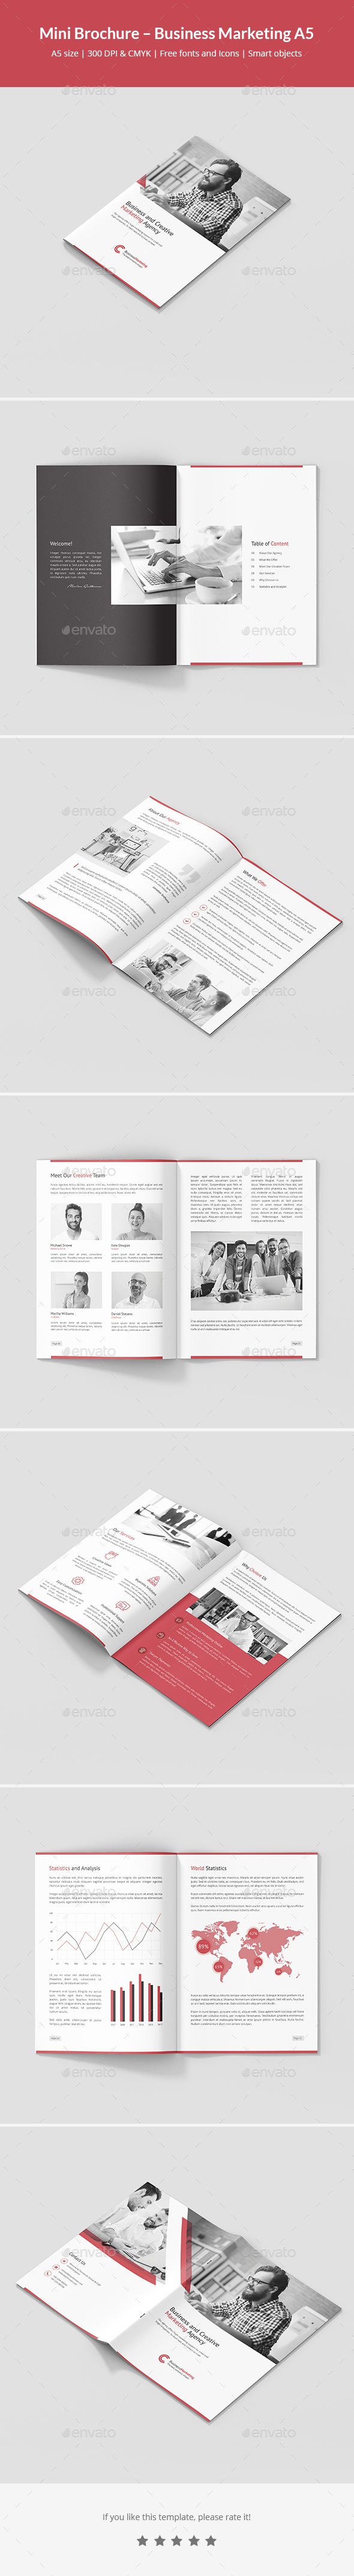 Mini Brochure – Business Marketing A5 - Corporate Brochures